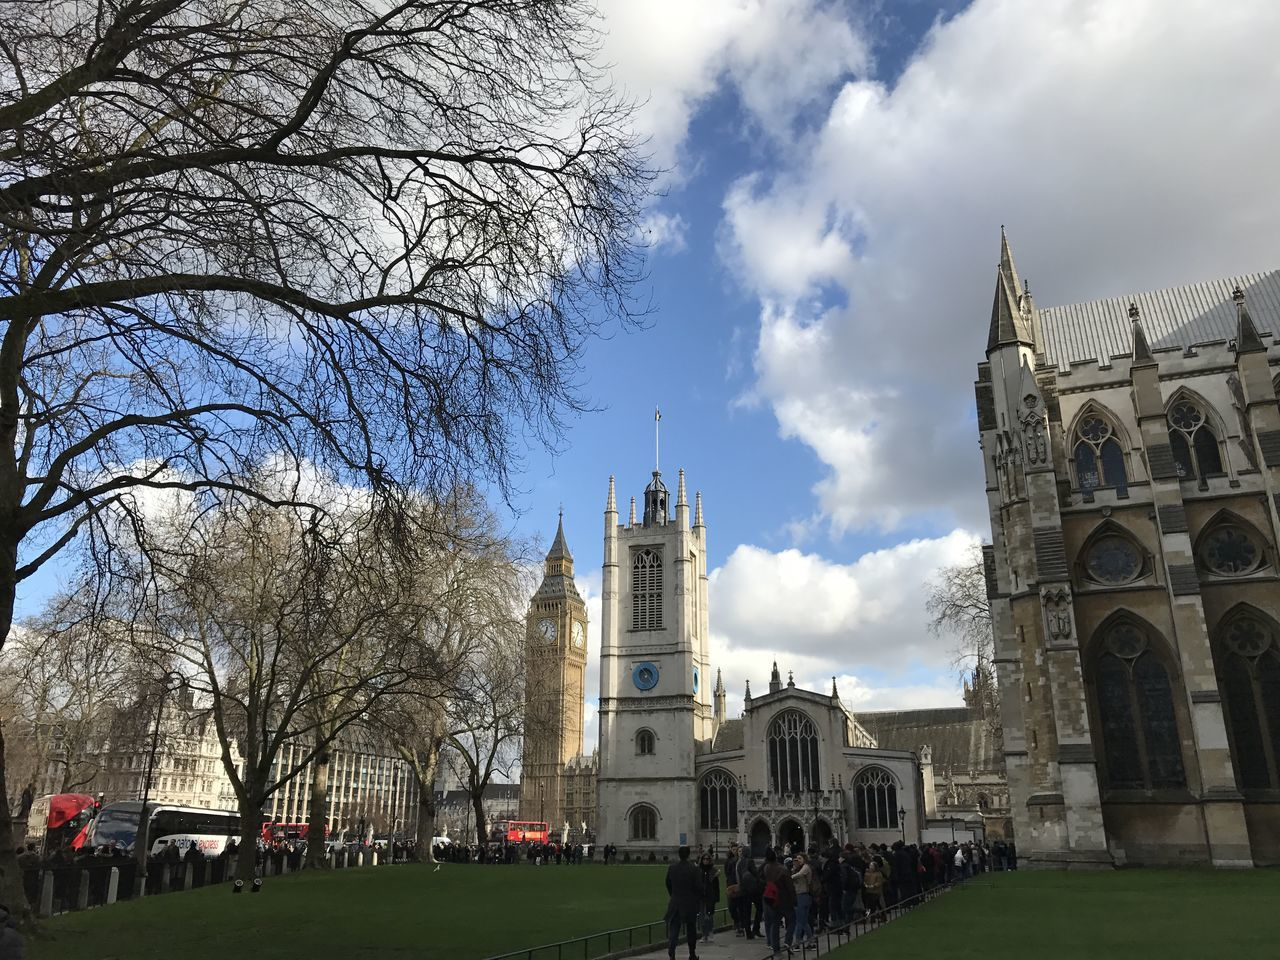 Architecture Building Exterior Built Structure City Cultures Day Large Group Of People London Outdoors People Place Of Worship Religion Sky Statue Travel Destinations Tree Uk Westminster Abbey